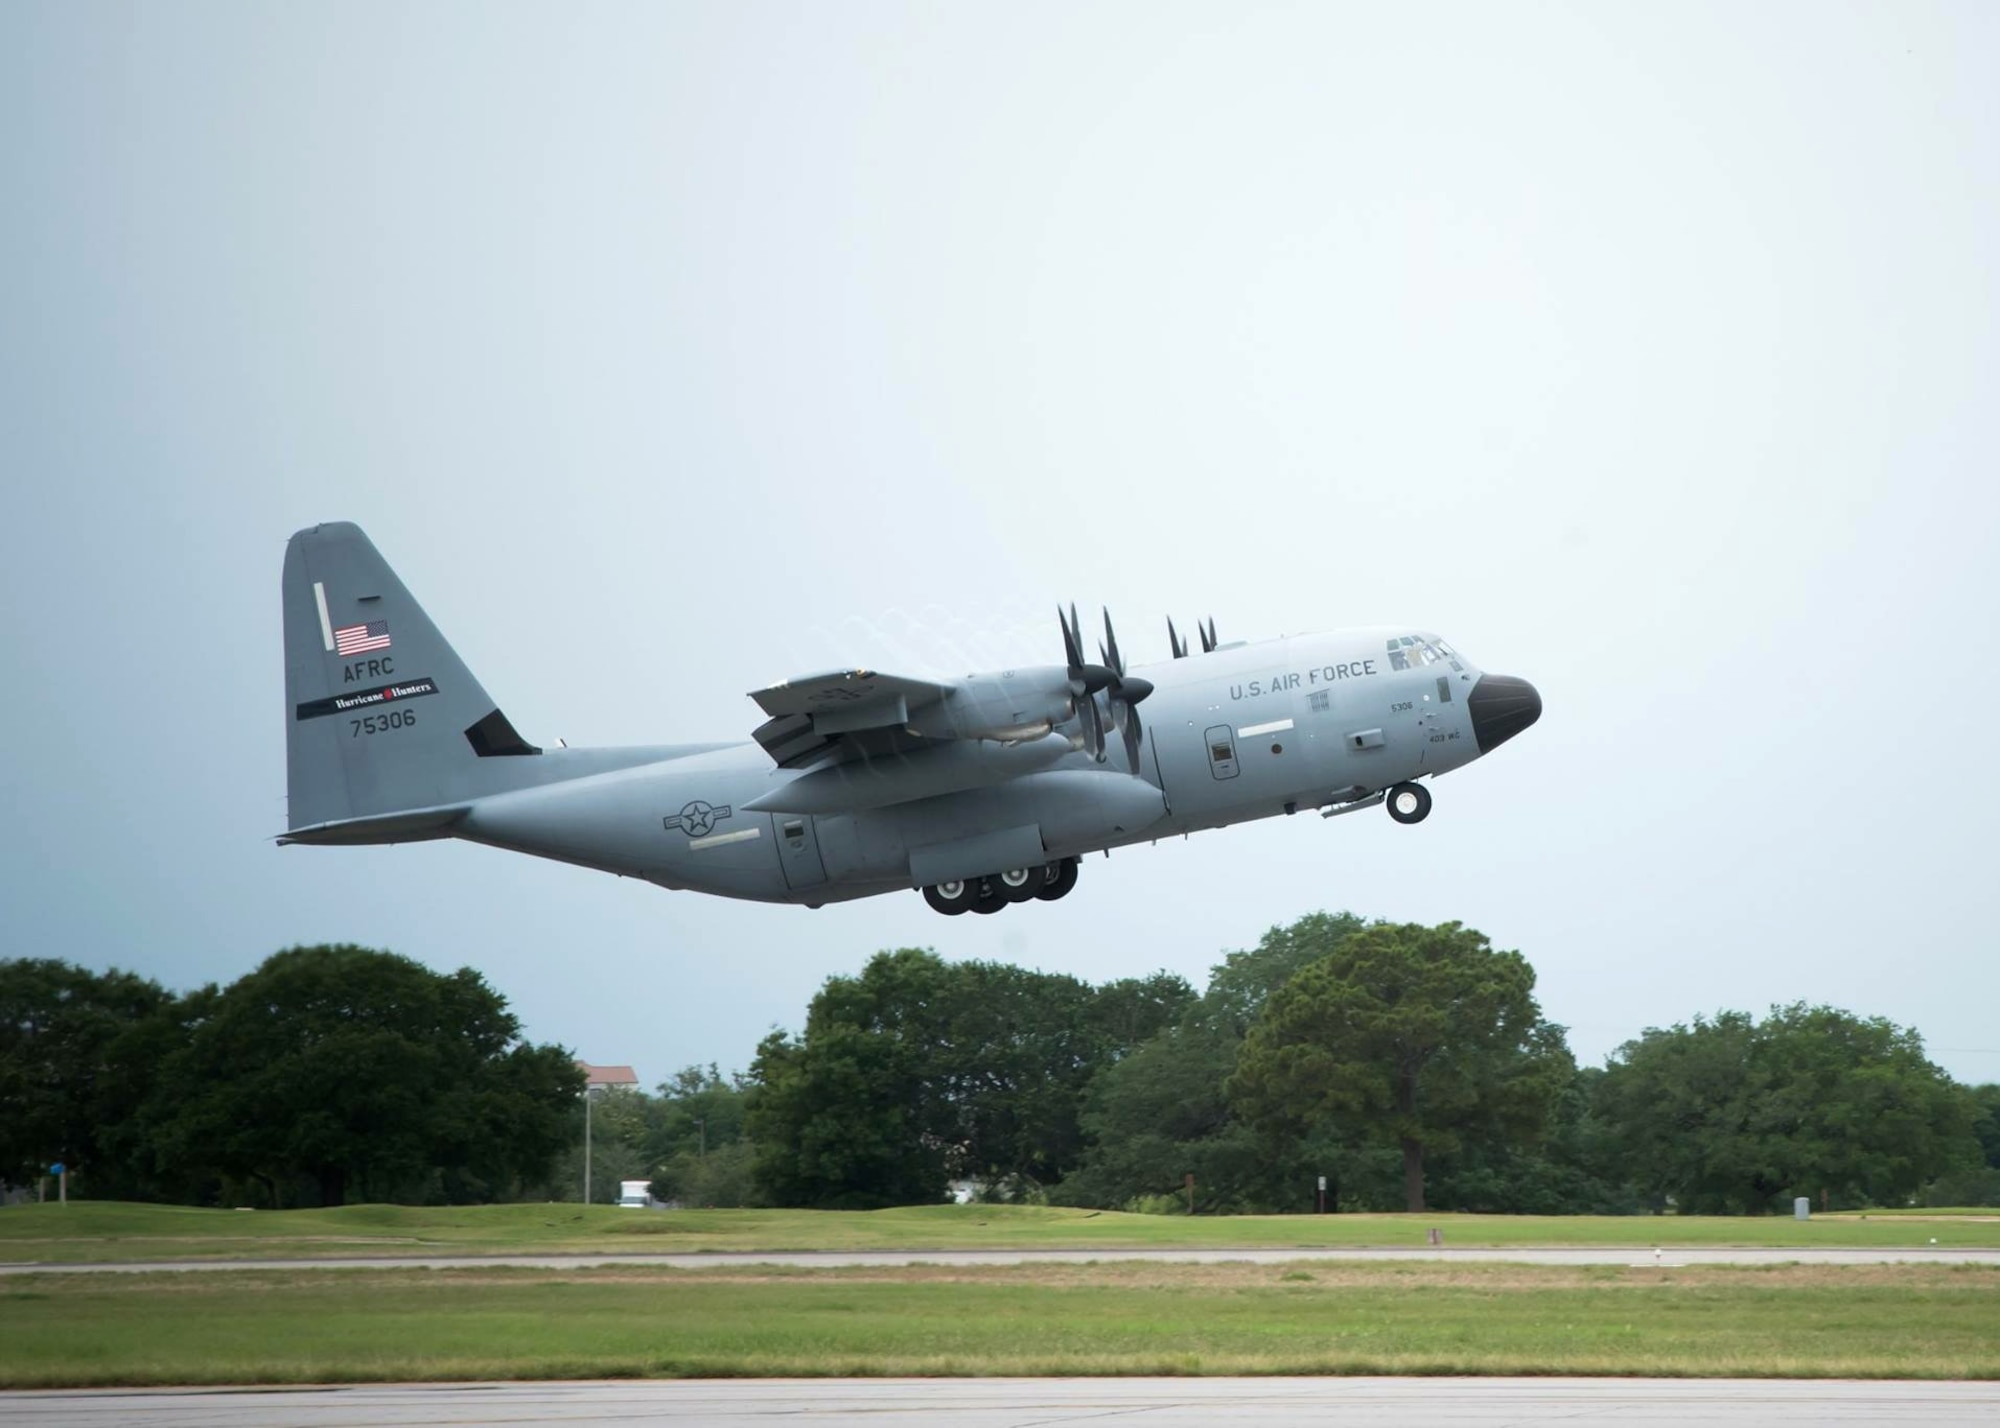 """The Air Force Reserve's 53rd Weather Reconnaissance Squadron """"Hurricane Hunters"""" depart Keesler Air Force Base, Mississippi, May 31, 2017, to take part in the U.S. Navy's Gulf of Mexico Oceanography Unmanned Systems Operational Demonstration. The squadron collected weather data for the U.S. Navy May 30 to June 2, 2017, as part of the event. (U.S. Air Force photo/Maj. Marnee A.C. Losurdo)"""